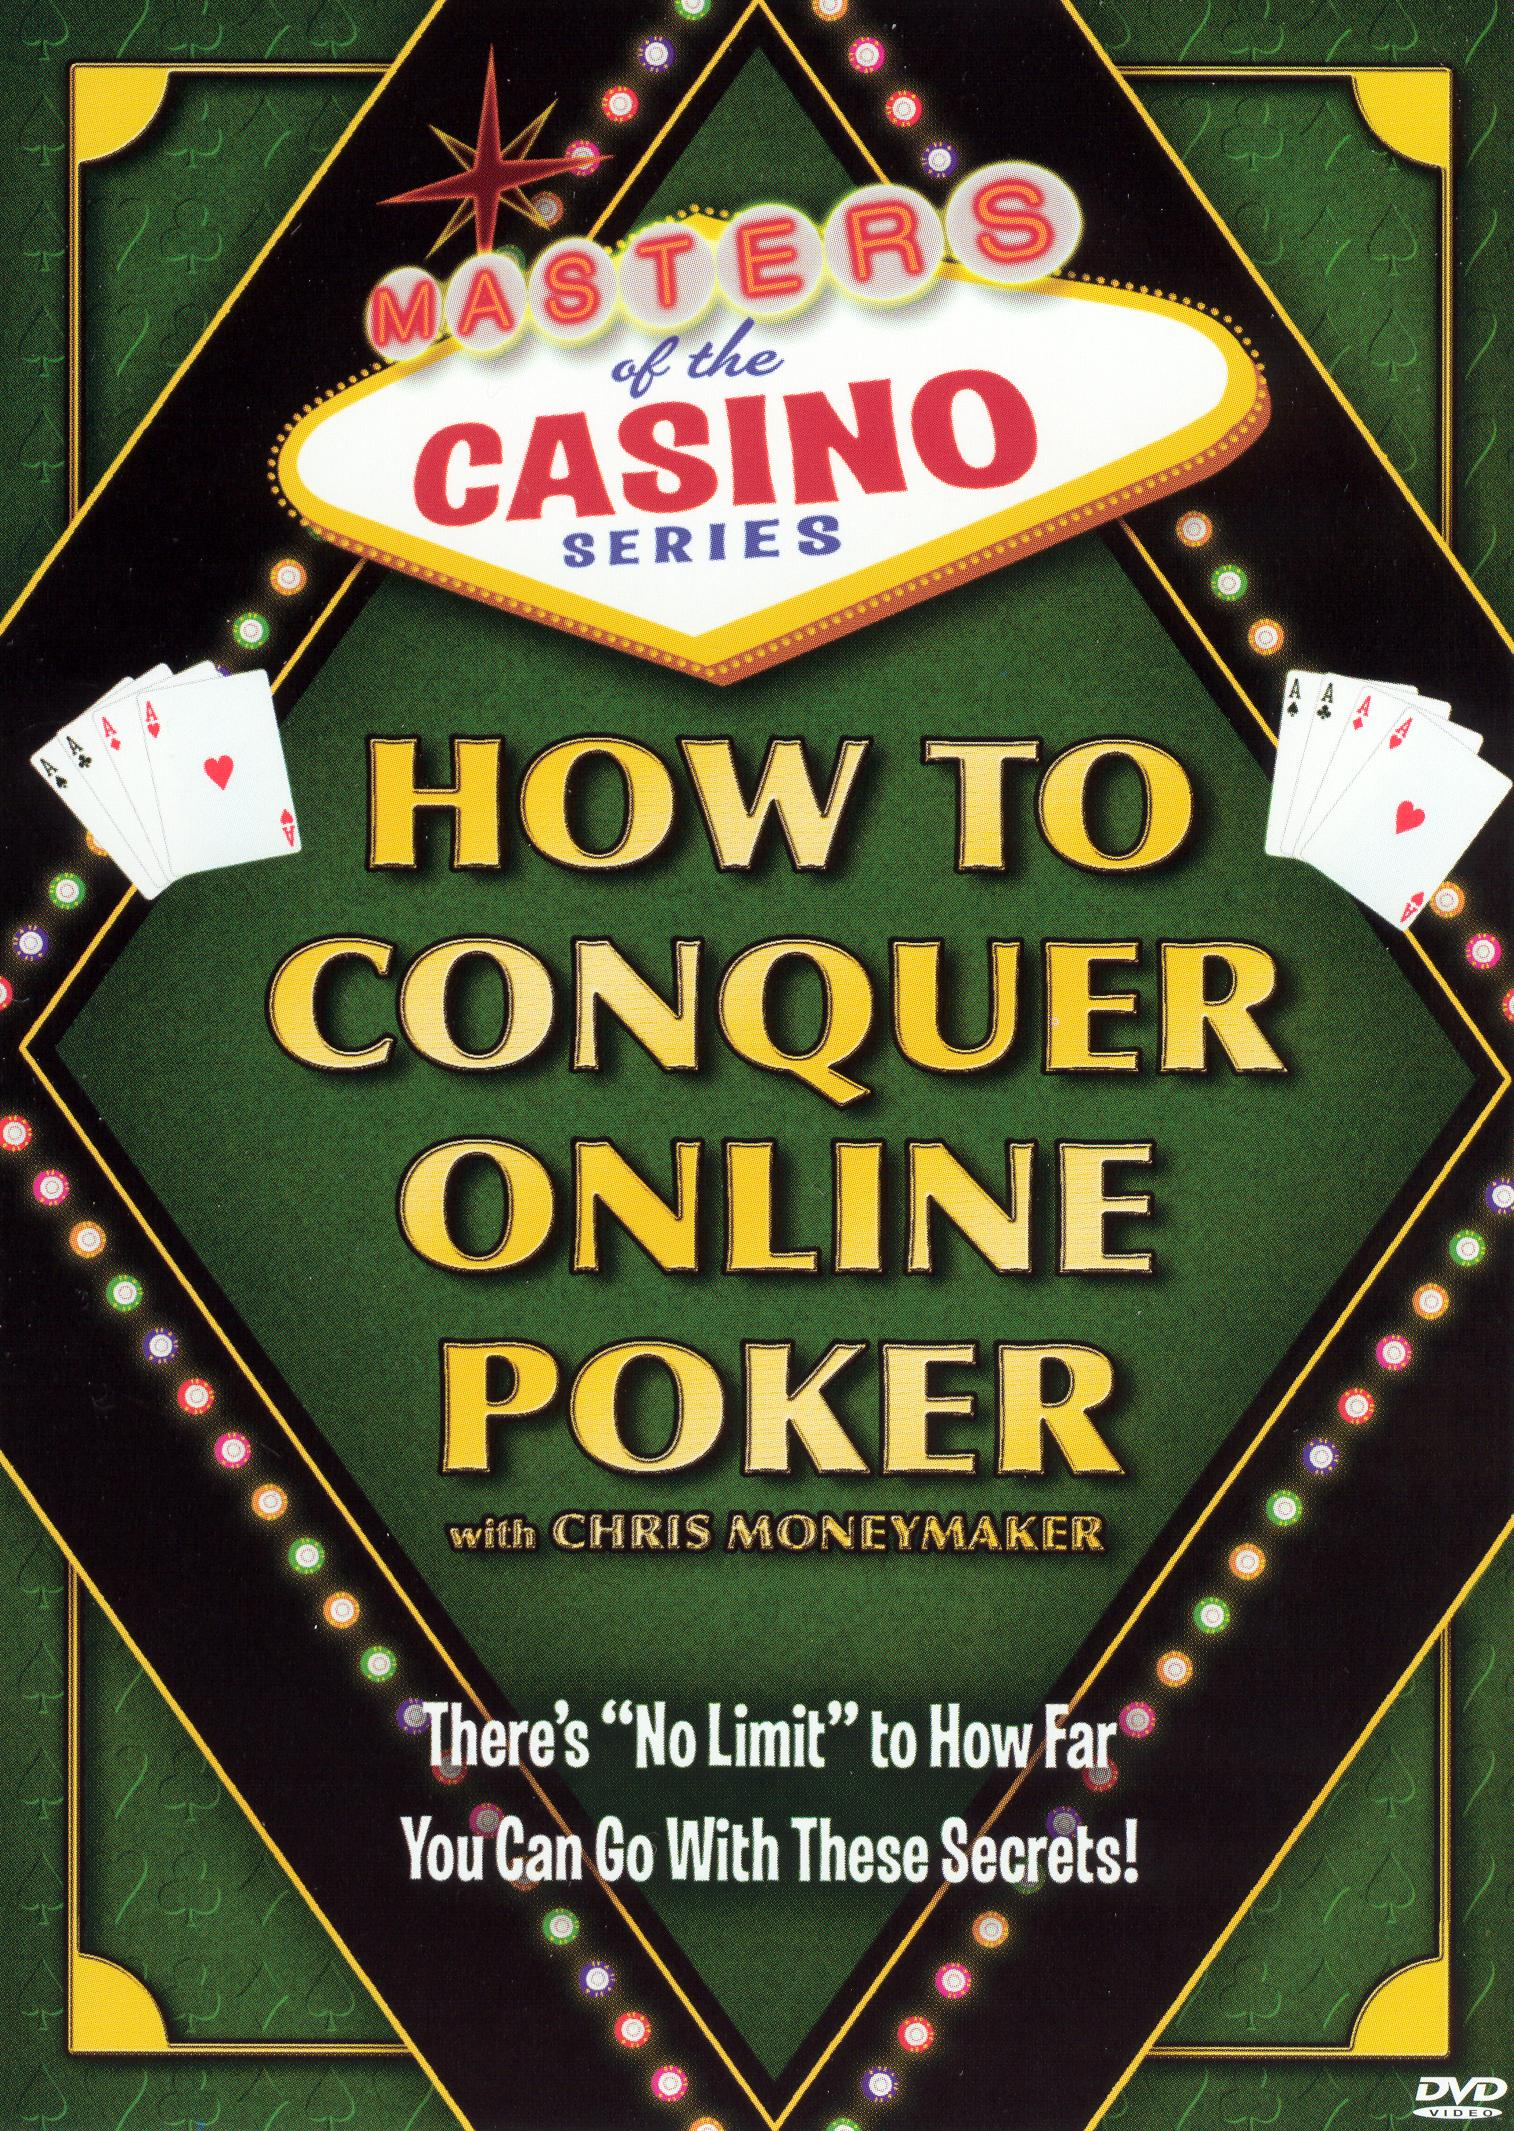 How to Conquer Online Poker with Chris Moneymaker